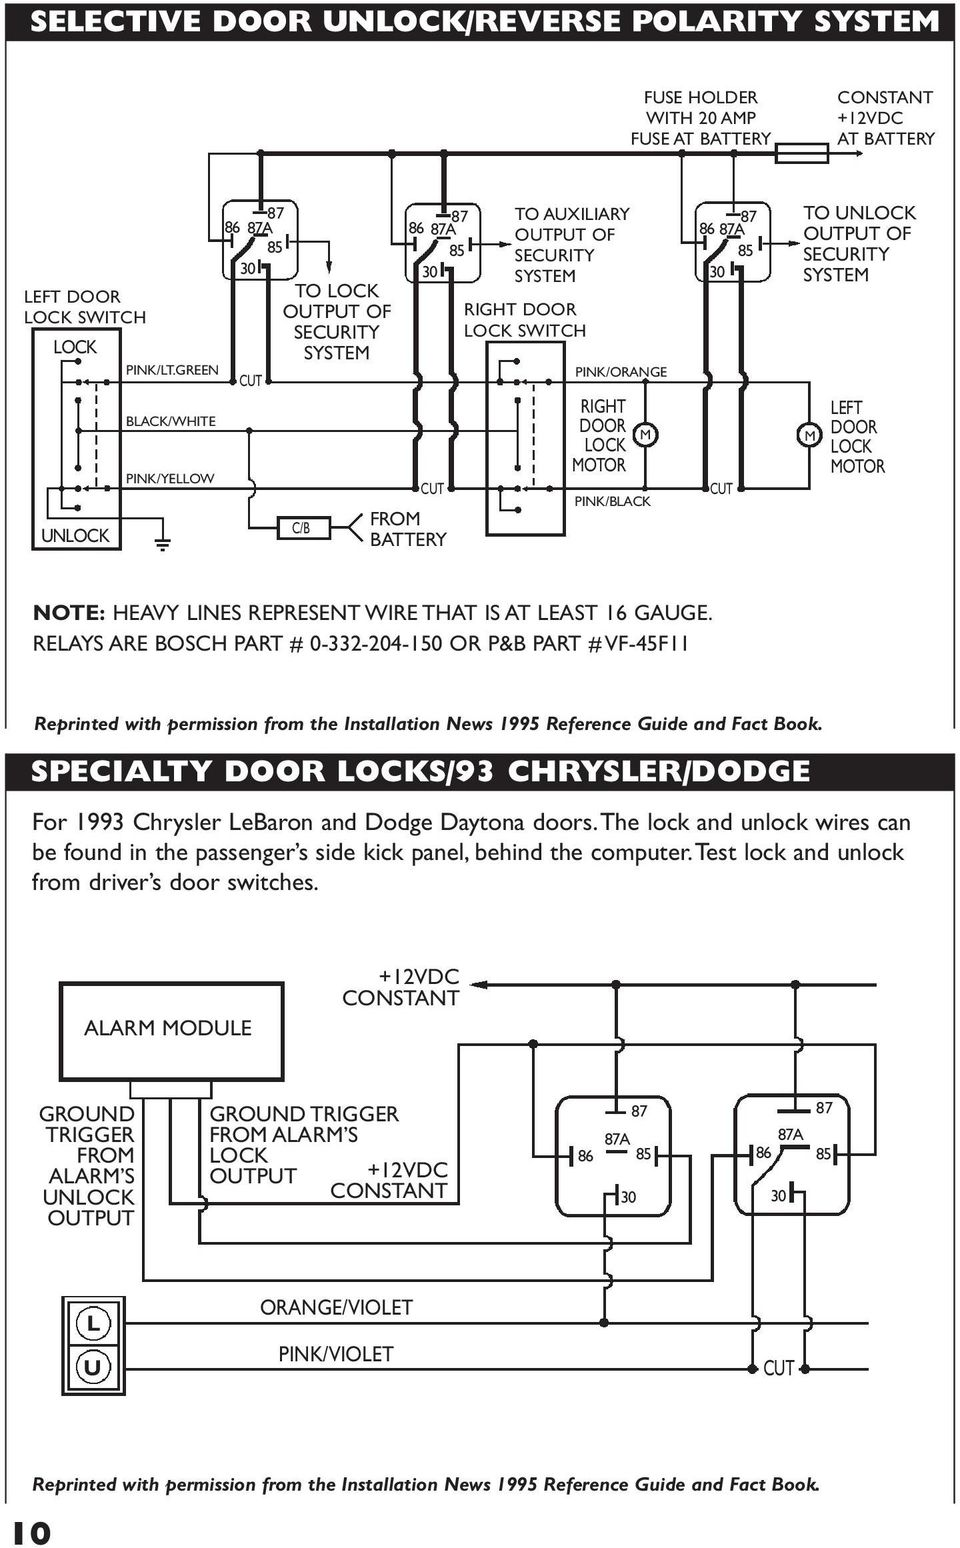 David Levy Company Inc Pdf 1995 Chrysler Lebaron Fuse Diagram Wiring Schematic Unlock Of Security System M Left Door Lock Motor Note Heavy Lines Represent Wire That